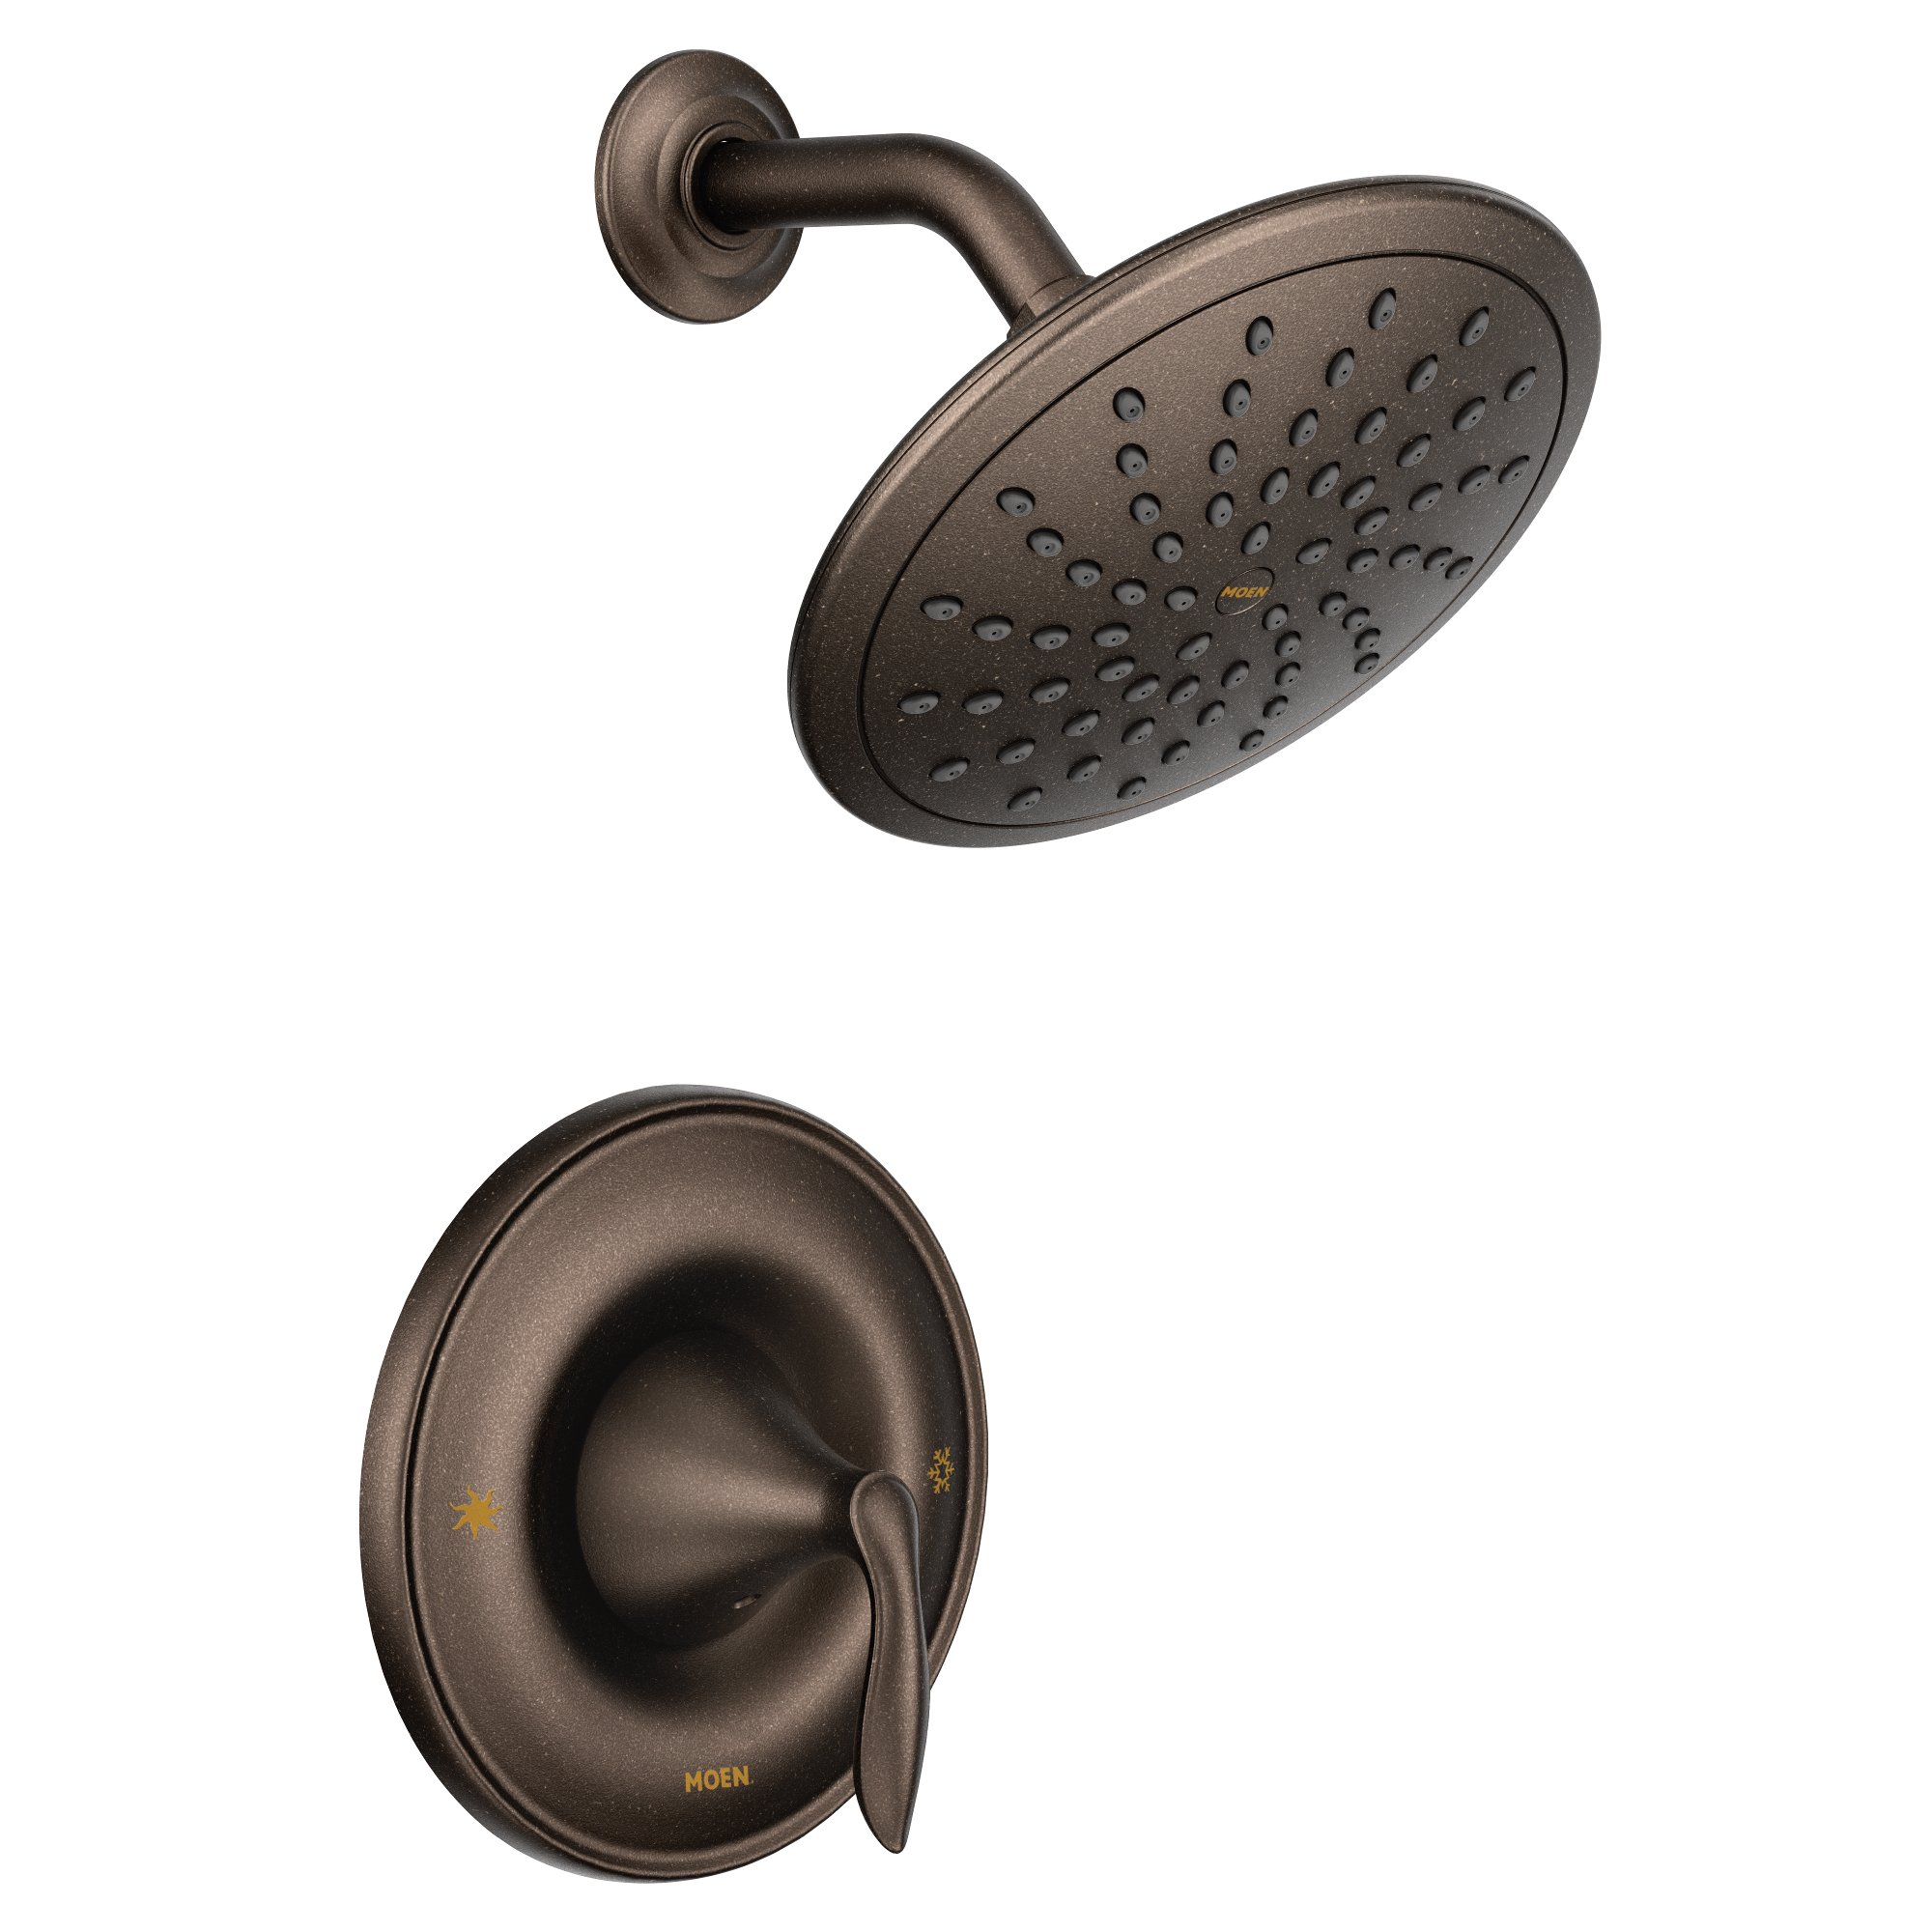 Moen T2232EPORB Eva Shower Only System with Rainshower Showerhead without Valve, Oil Rubbed Bronze